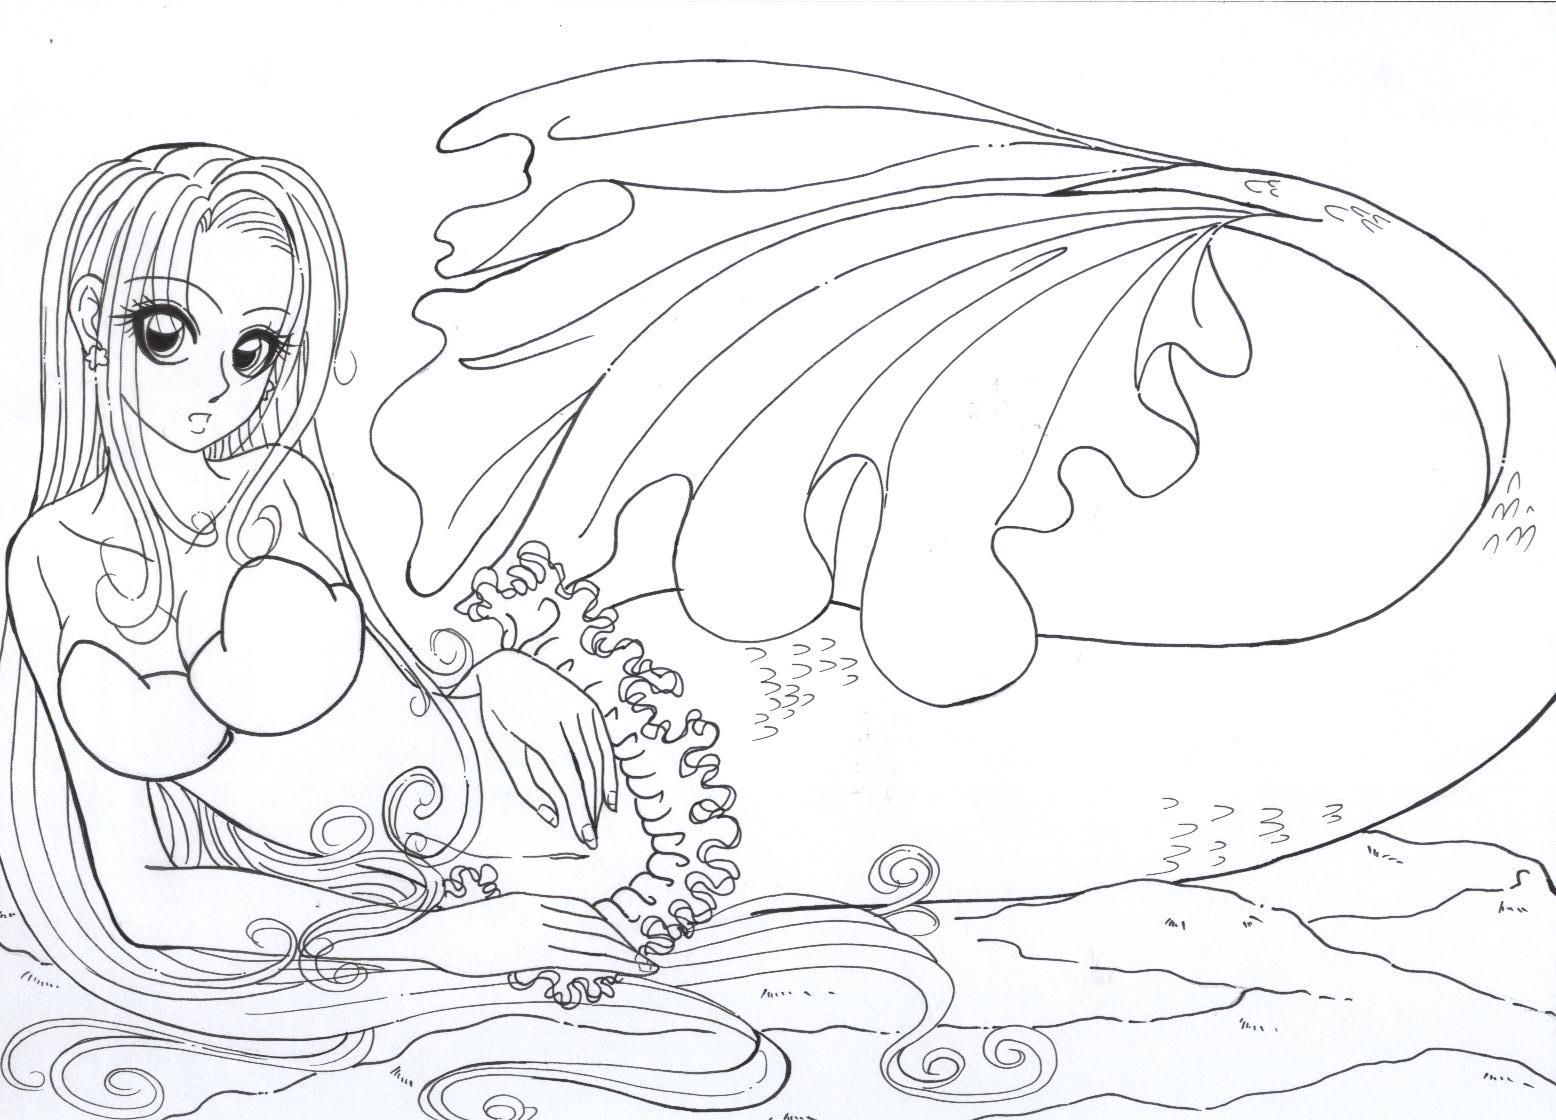 mermaidcolour me by resiove on deviantart coloring pages